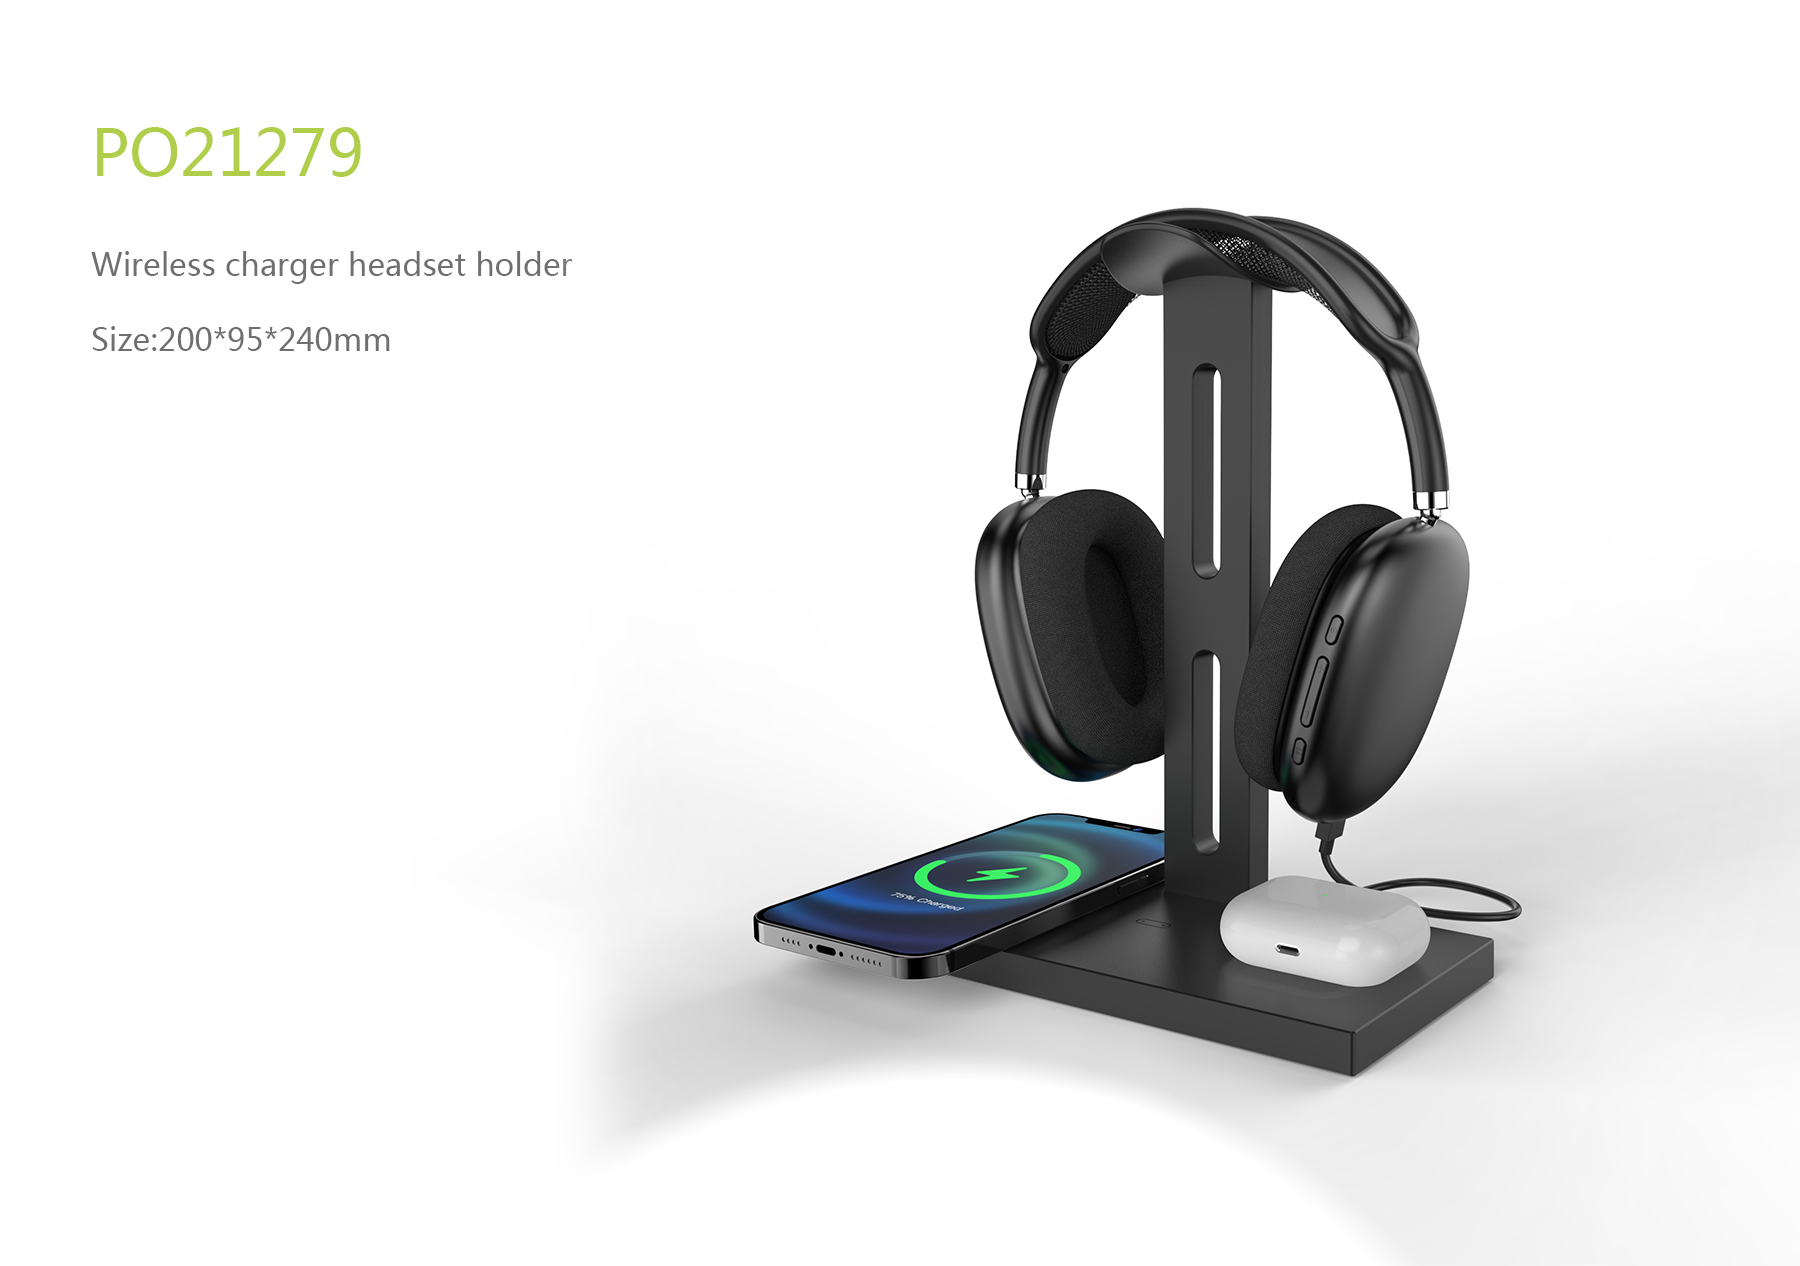 Wireless charger headset holder